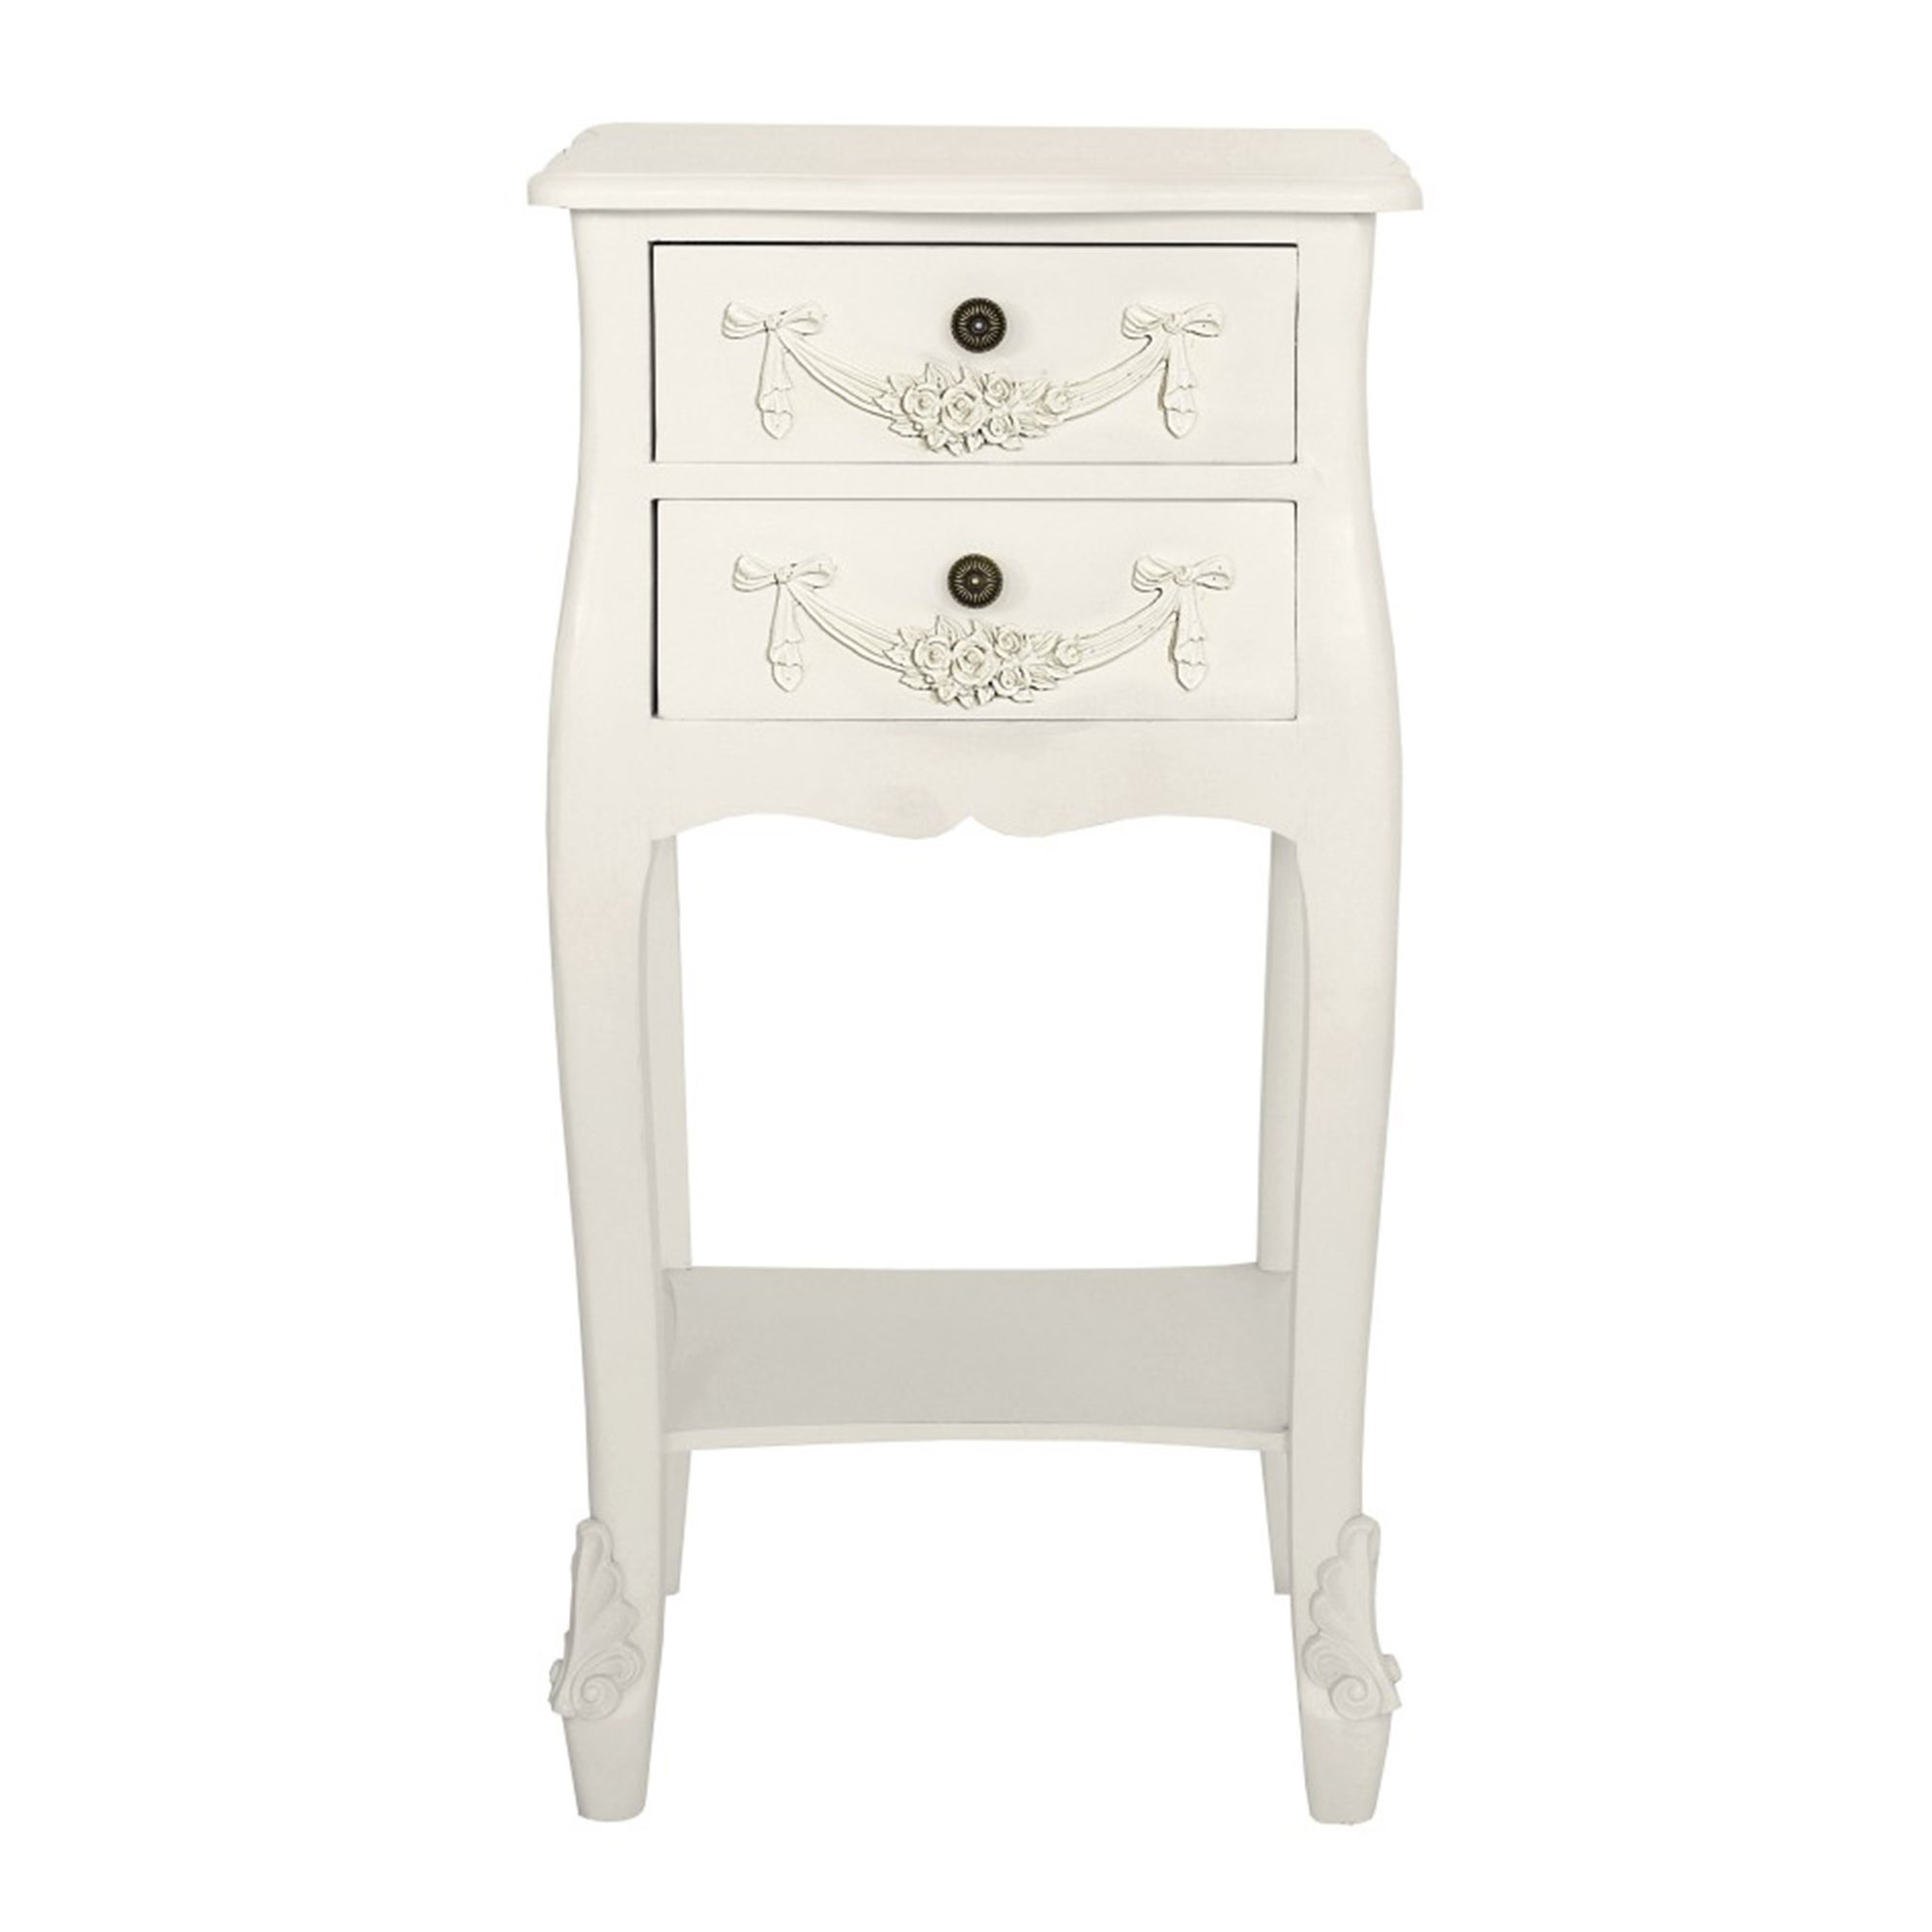 Photo of Toulouse white 2 drawer bedside table white